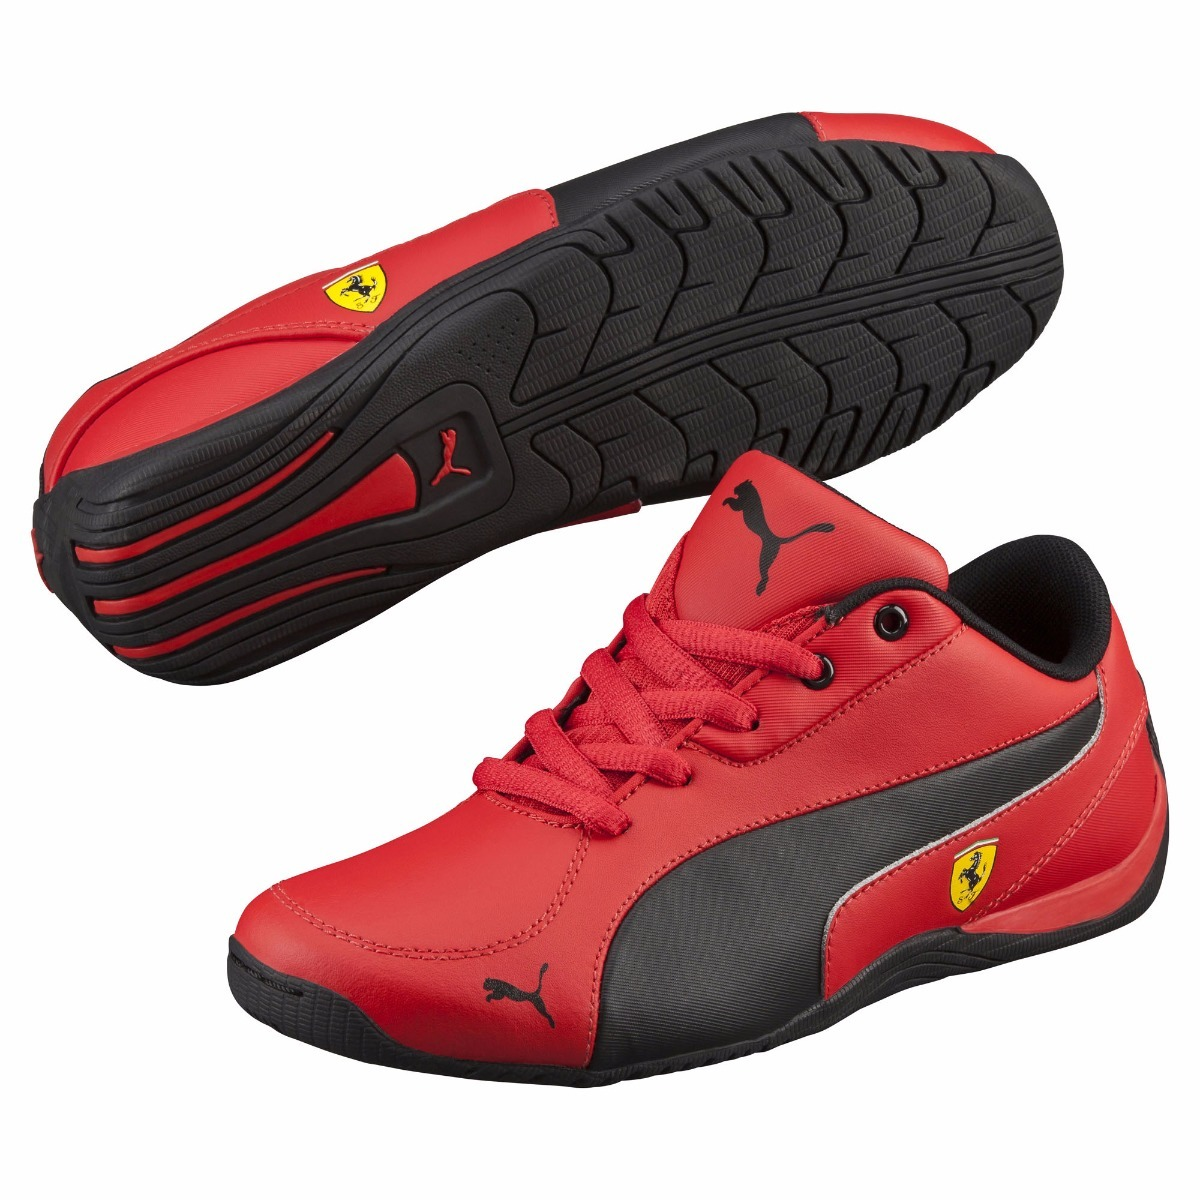 ... new zealand tenis puma ferrari drift cat 5 sf 23.5 rojo negro 36096903.  cargando zoom 6707a98b670